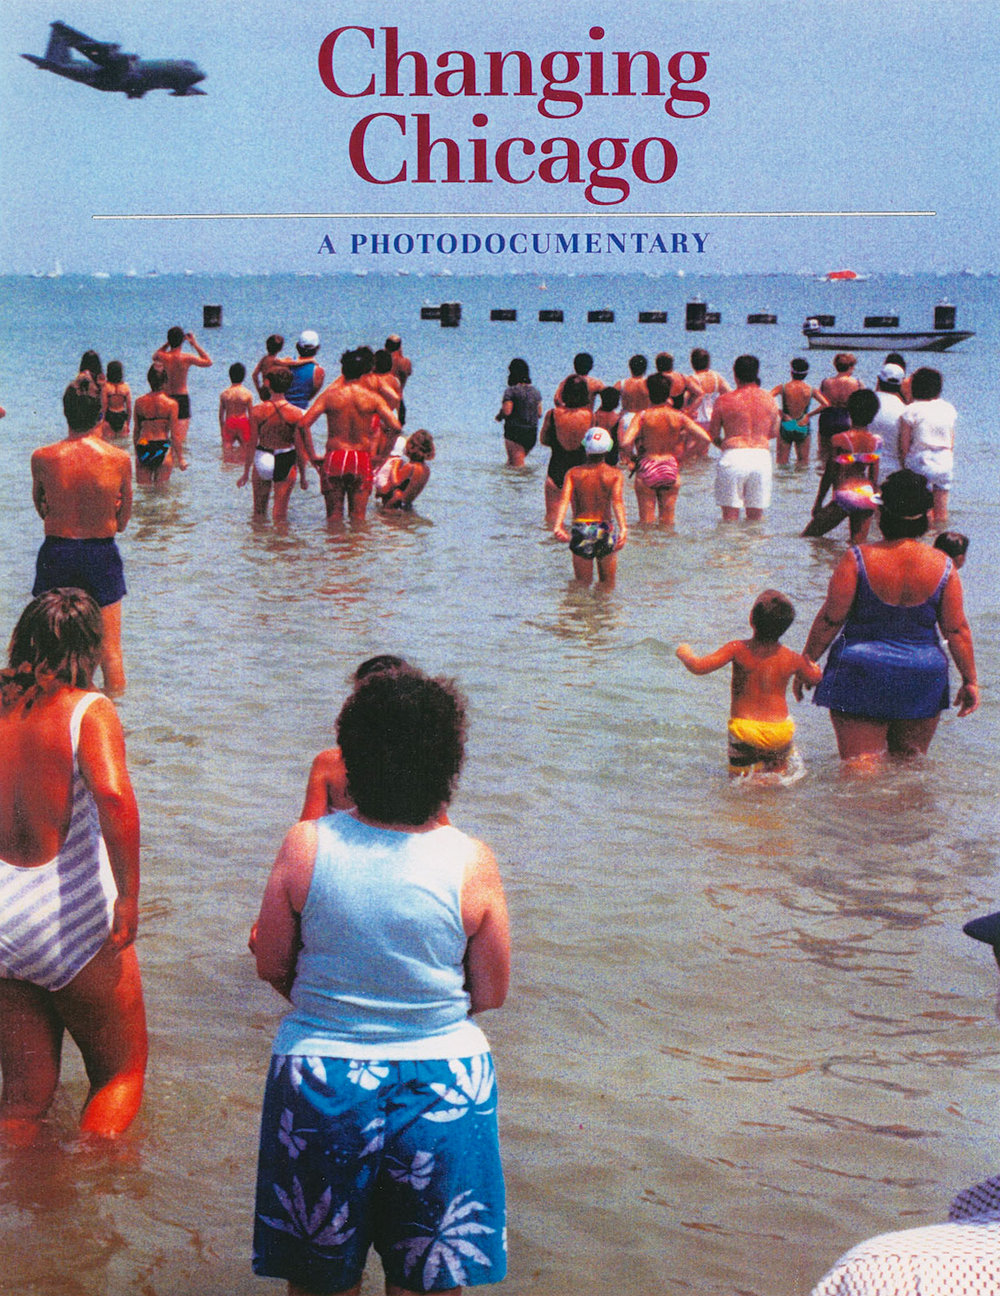 Changing Chicago Exhibition Catalog 1988